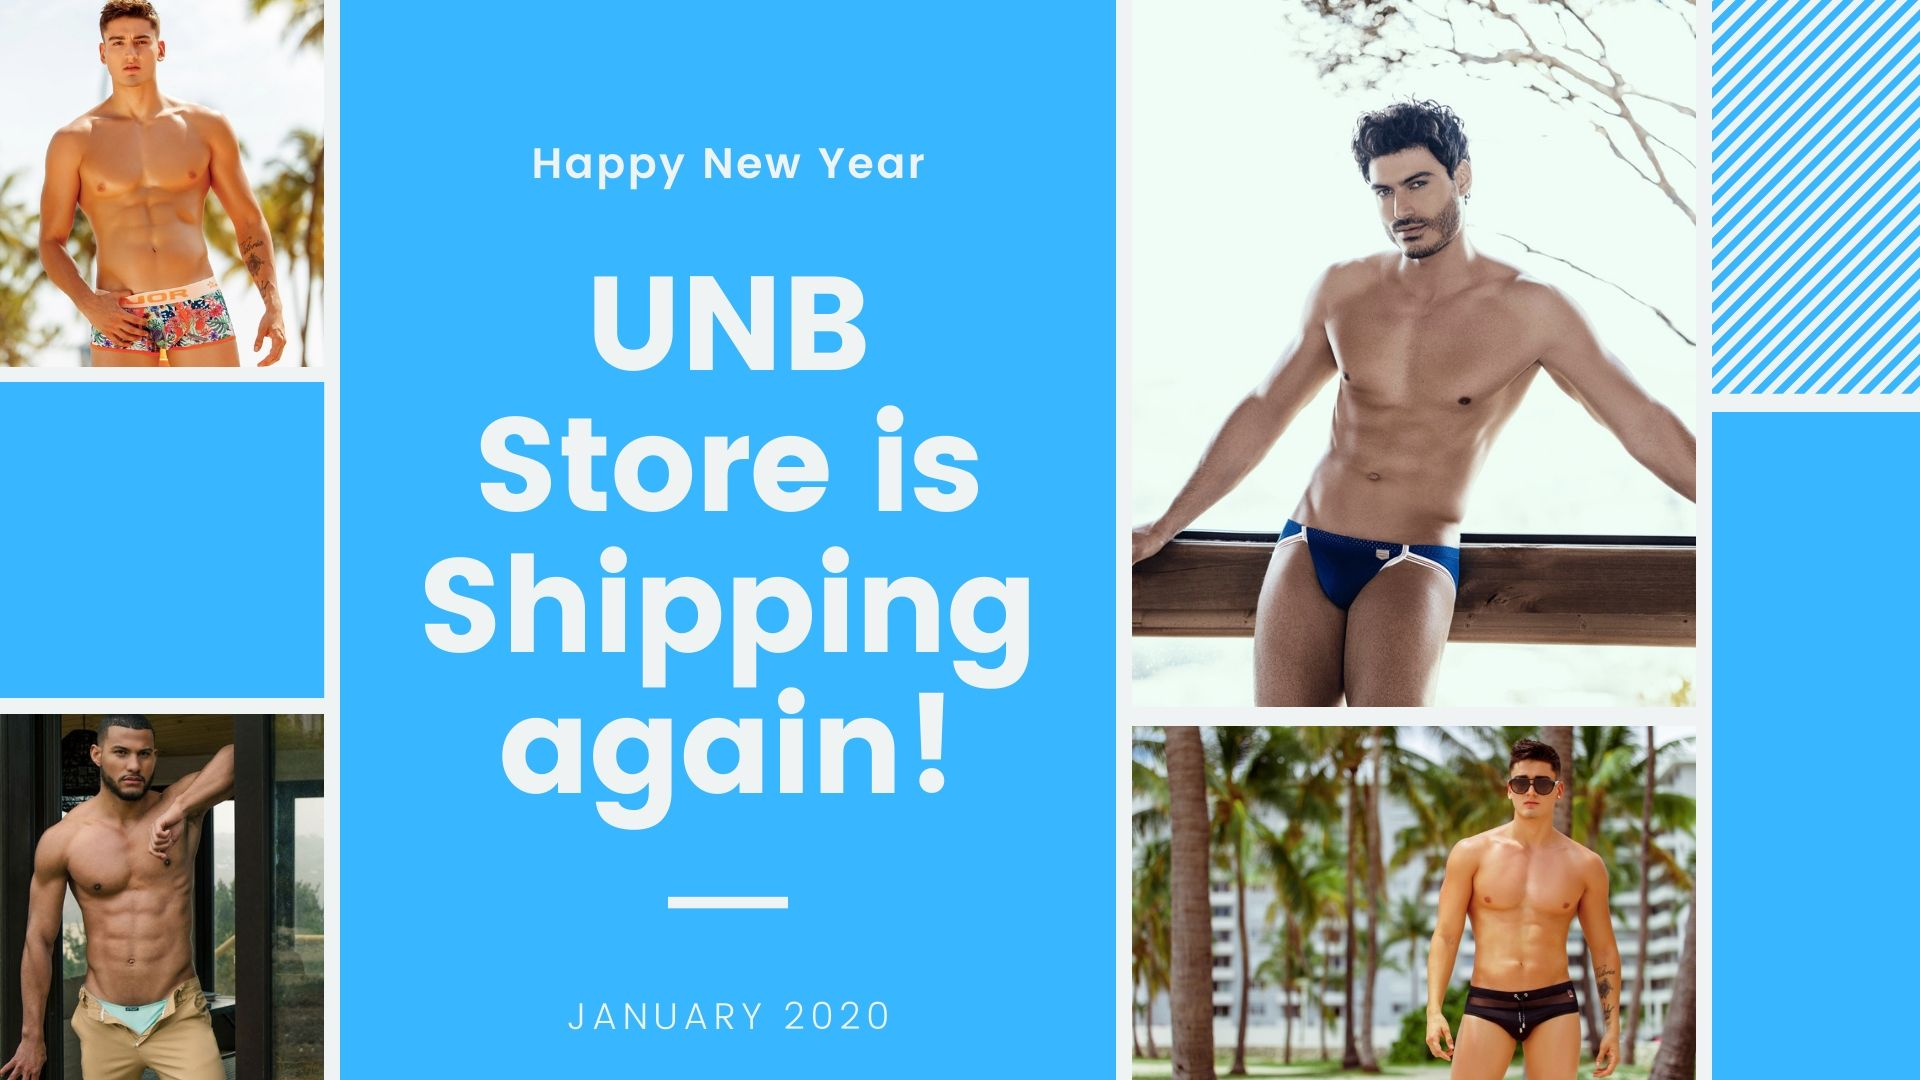 UNB Store is shipping again!